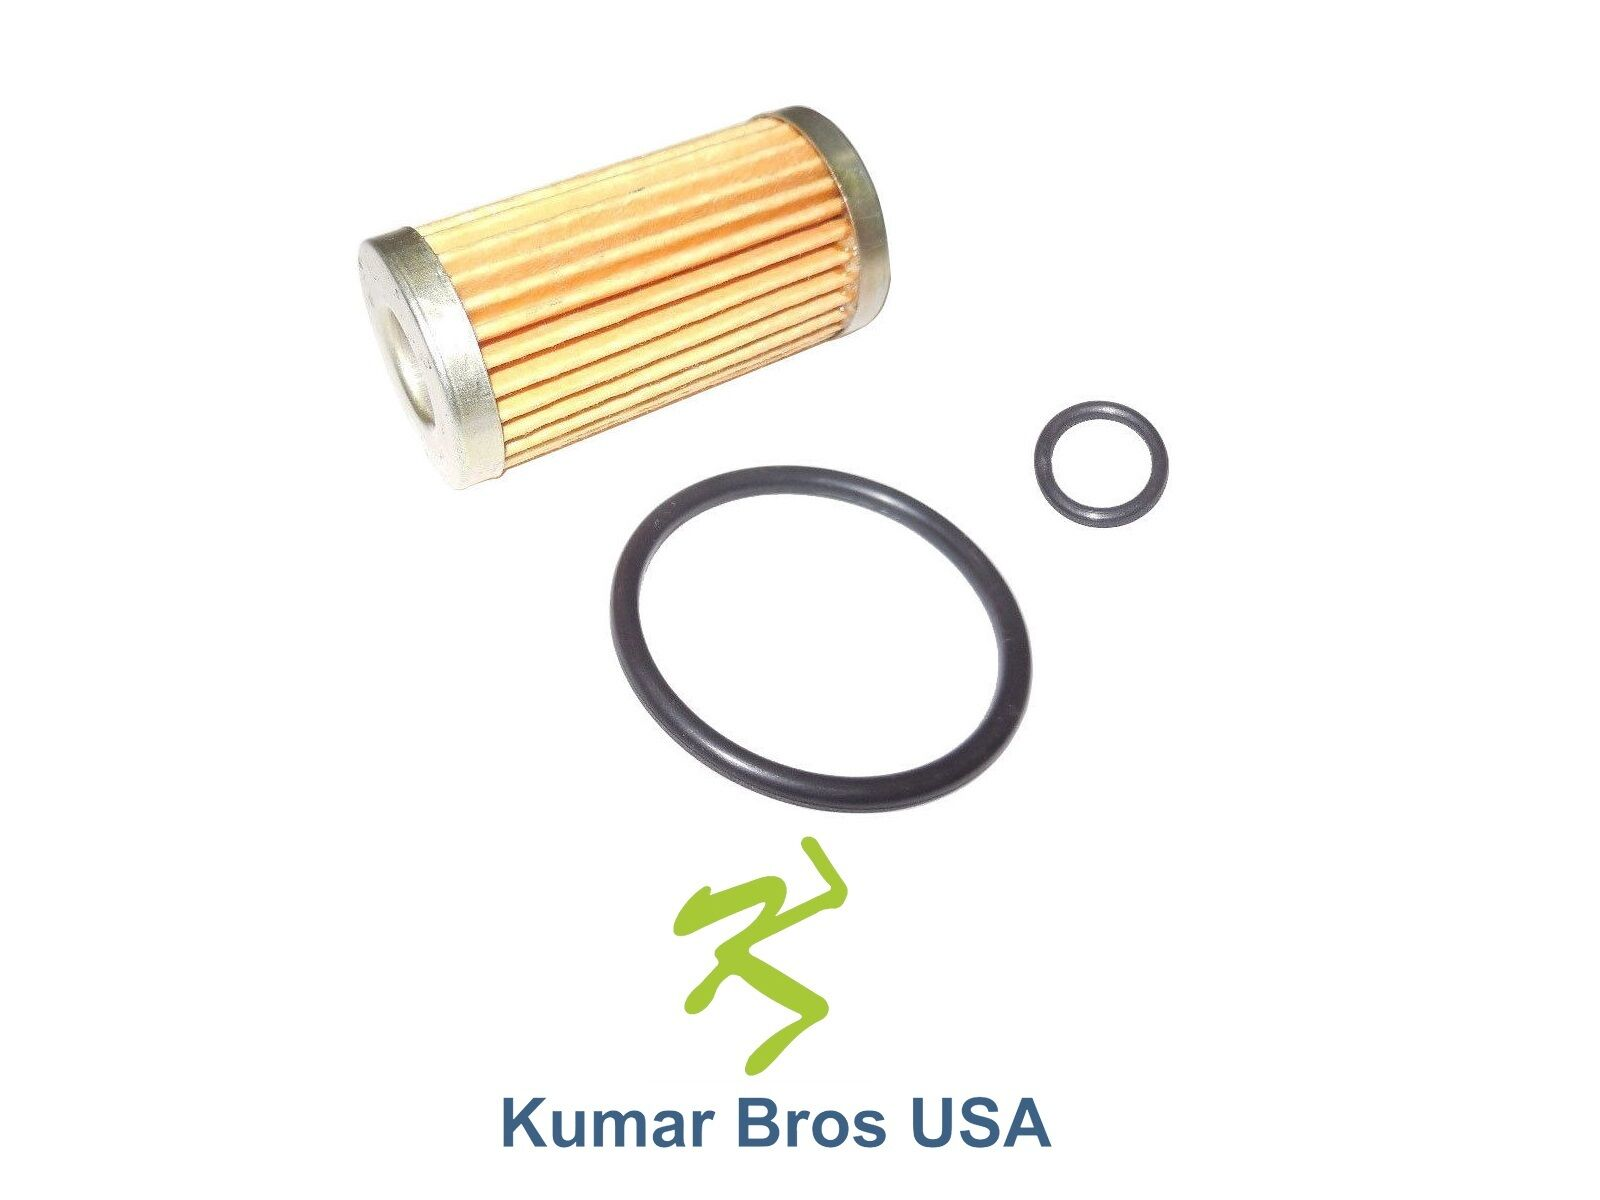 New Ford New Holland Fuel Filter with O-Ring 1110 1210 1310 1510 1710 1215  1 of 3FREE Shipping New Ford New Holland Fuel Filter ...